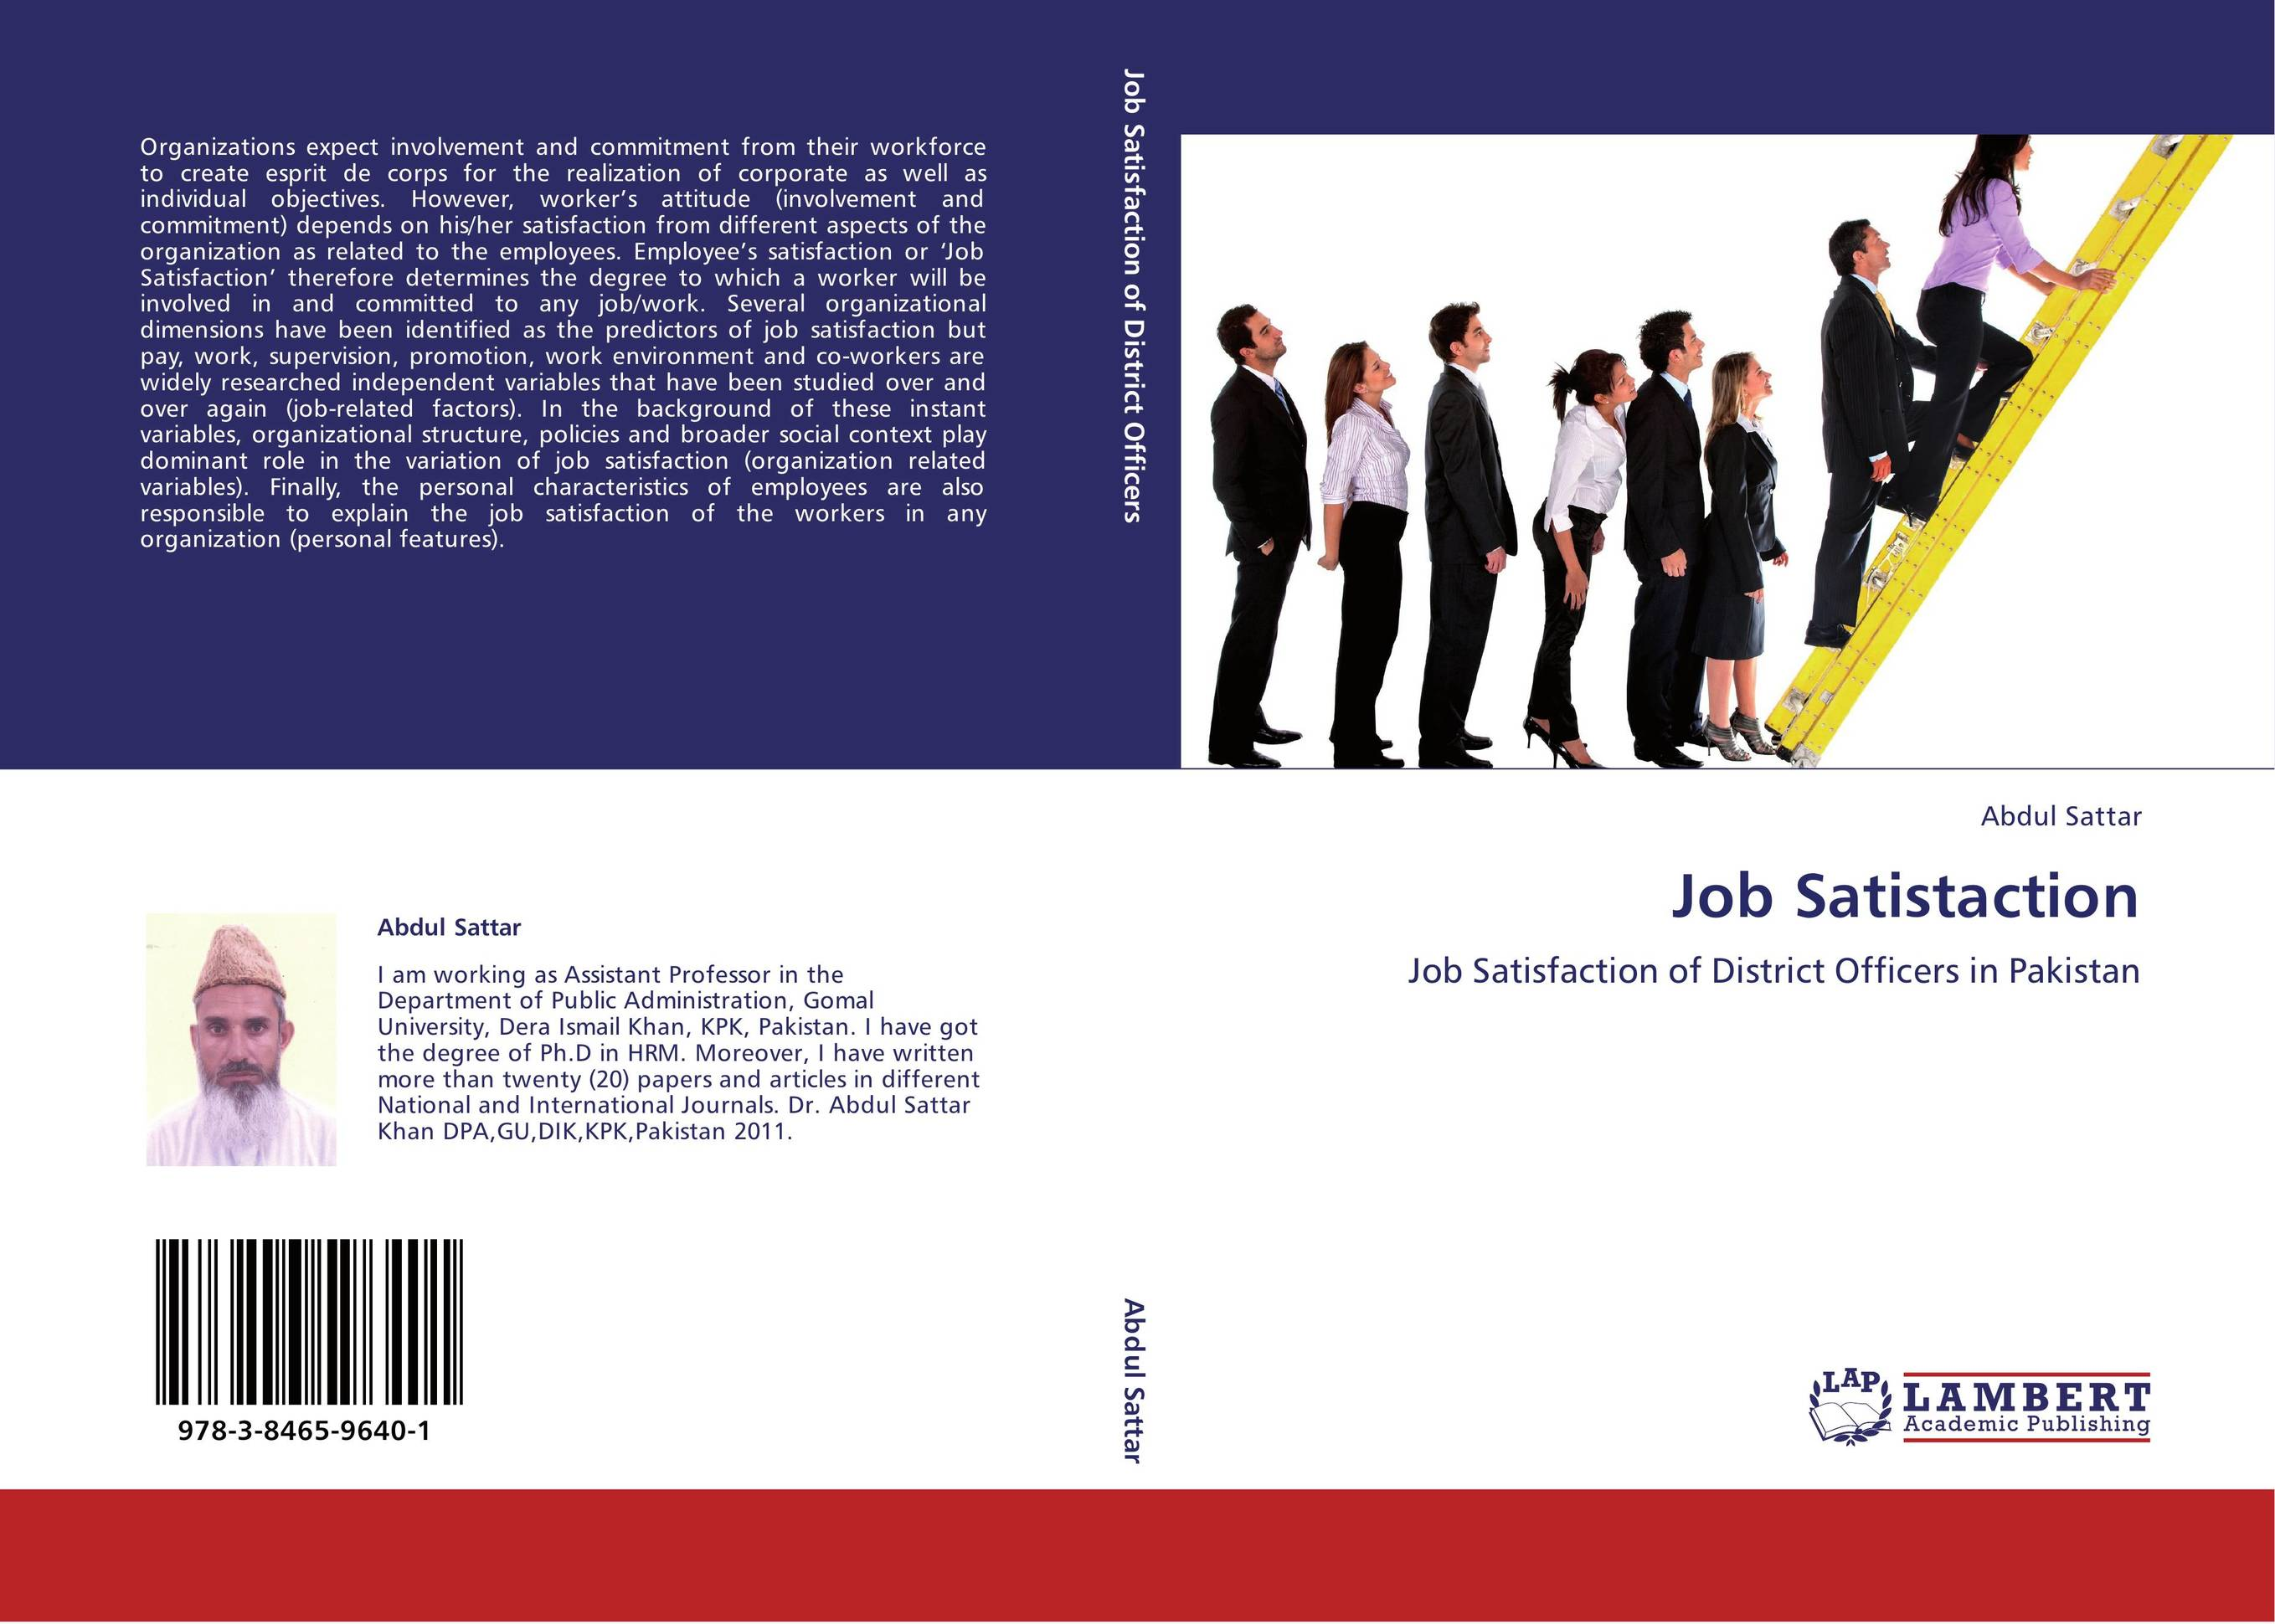 theories of job satisfaction and organisational commitment Researchers have found links between job satisfaction, organizational commitment  it has become more relevant in the organizational theory literature on topics.